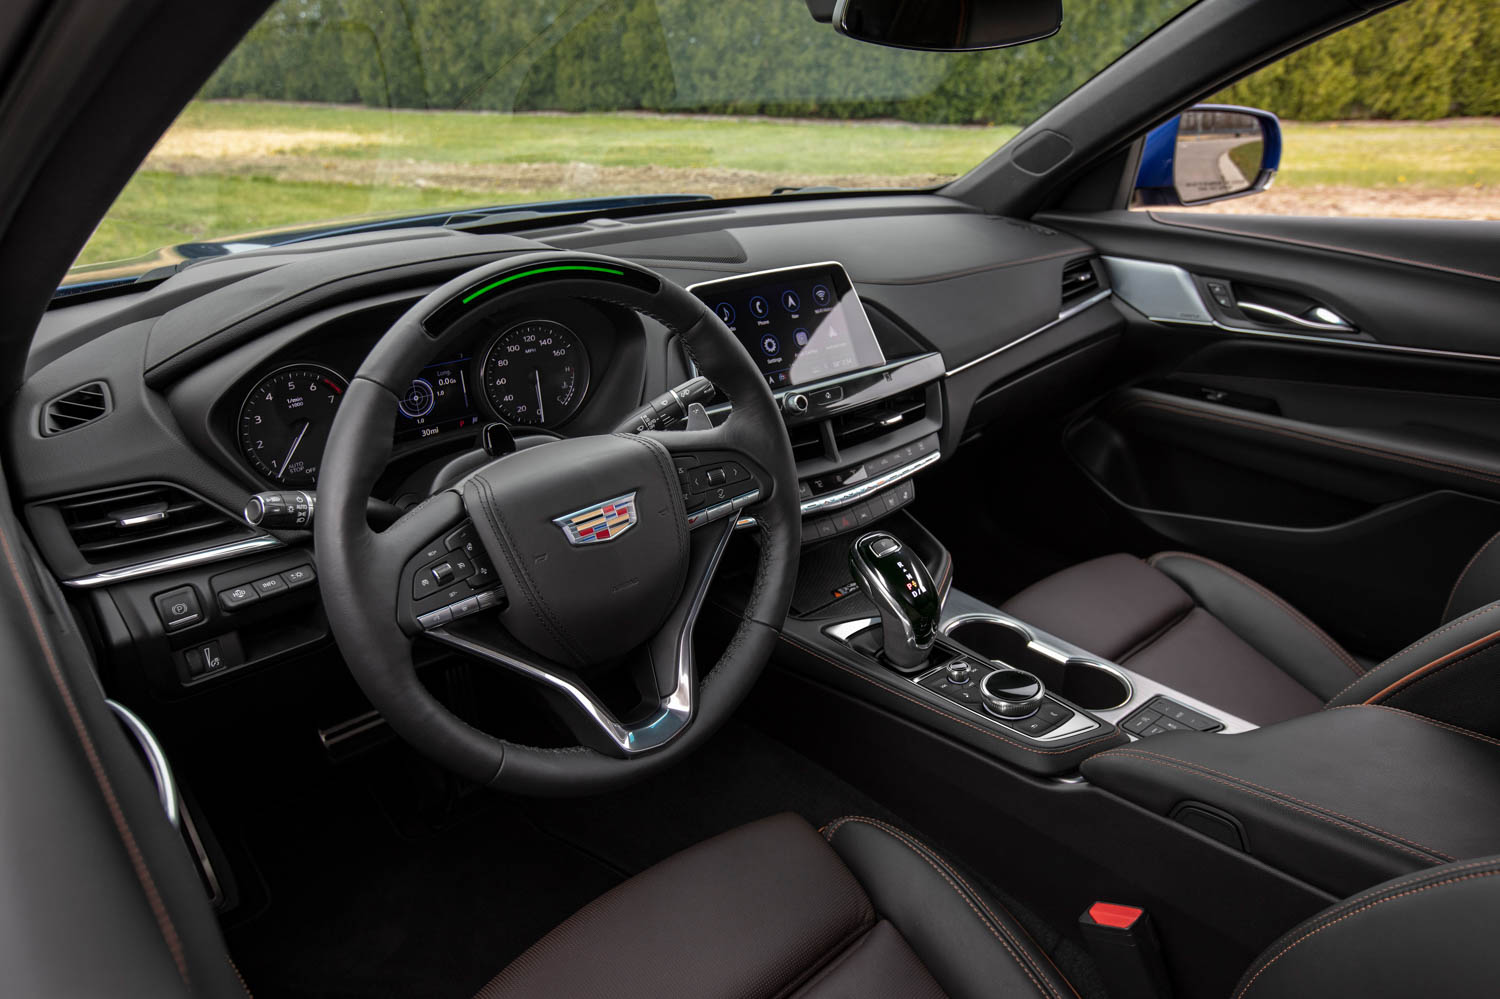 2020 Cadillac CT4-V interior